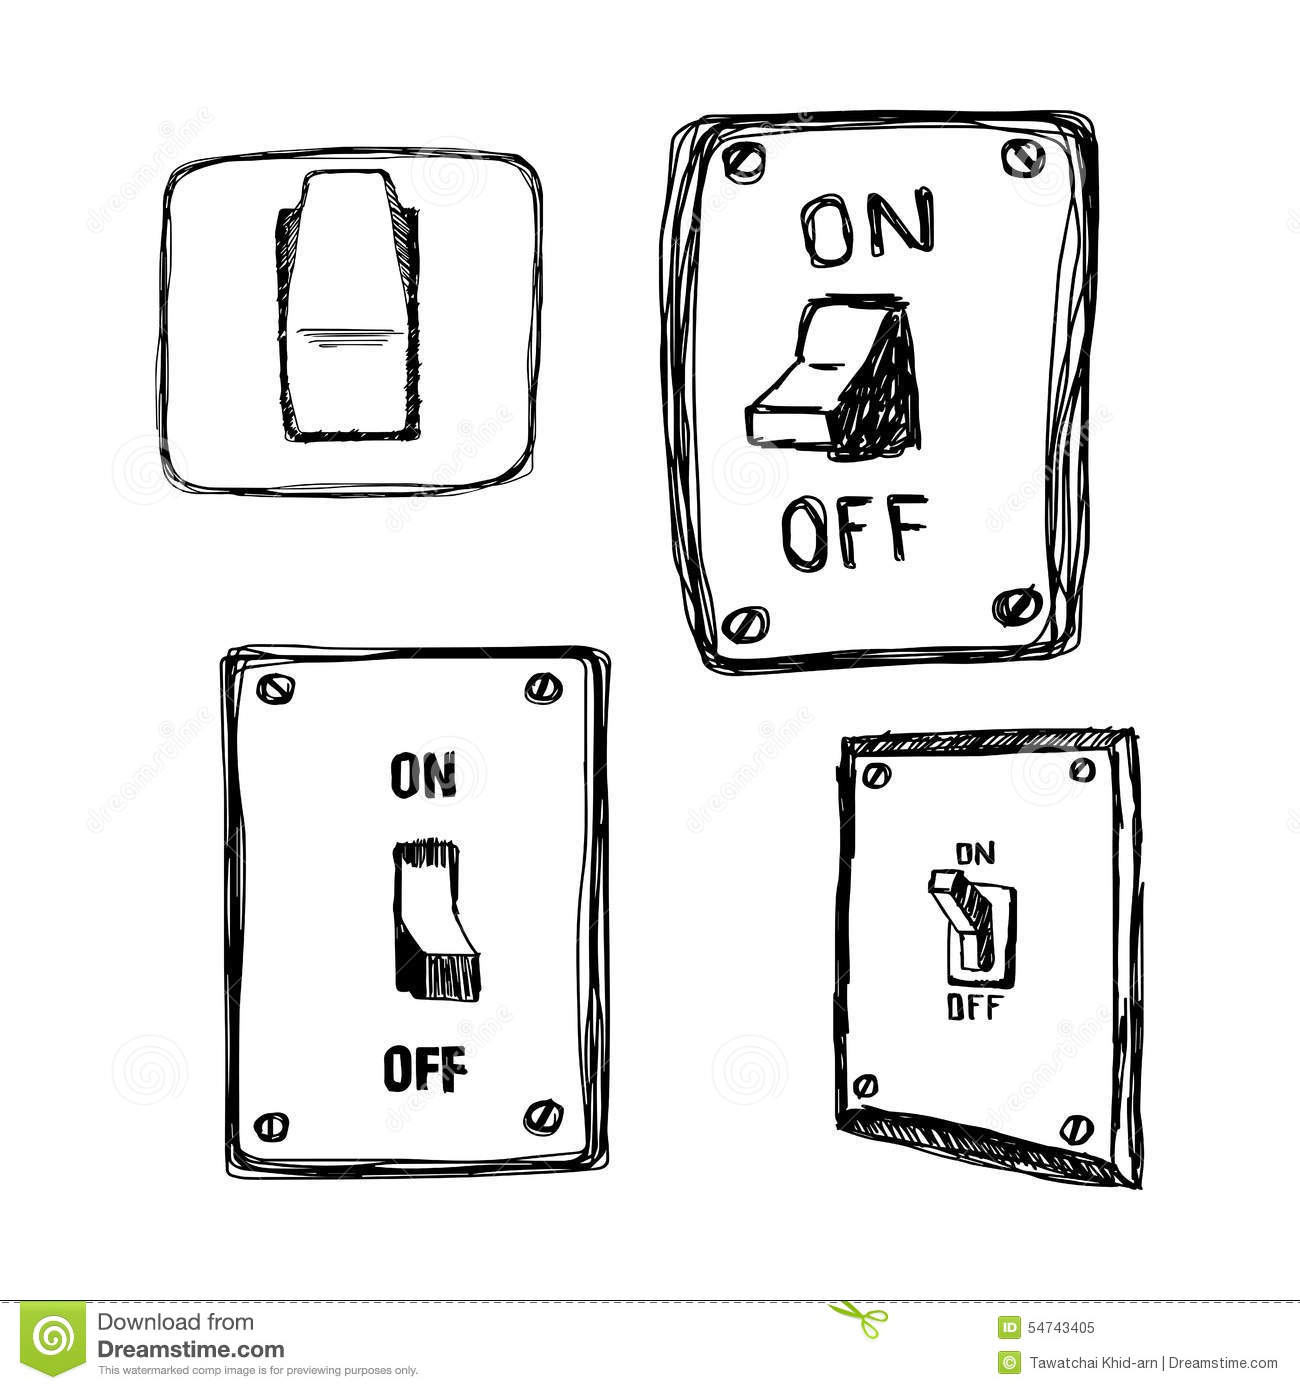 Electrical And Electronic Drawing Auto Wiring Diagram Vector Circuit Tree Stock Photo Image 34279490 Doodles Single Wall Light Switch